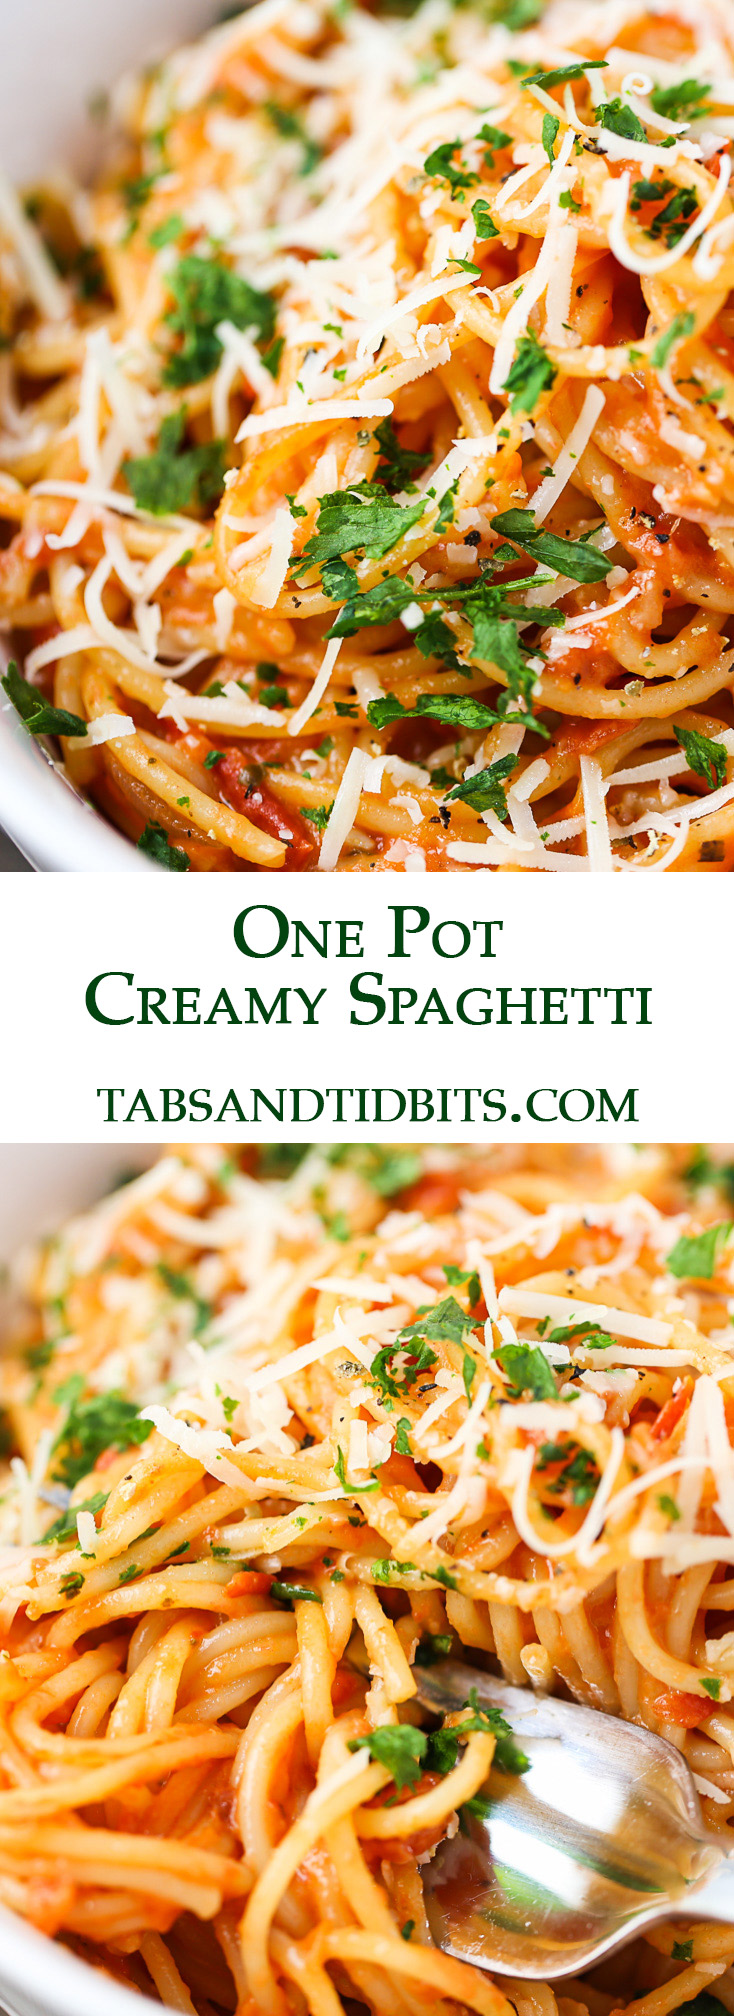 The spaghetti cooks in one pot with crushed tomatoes and vegetable broth with a little kick of heat and creaminess!